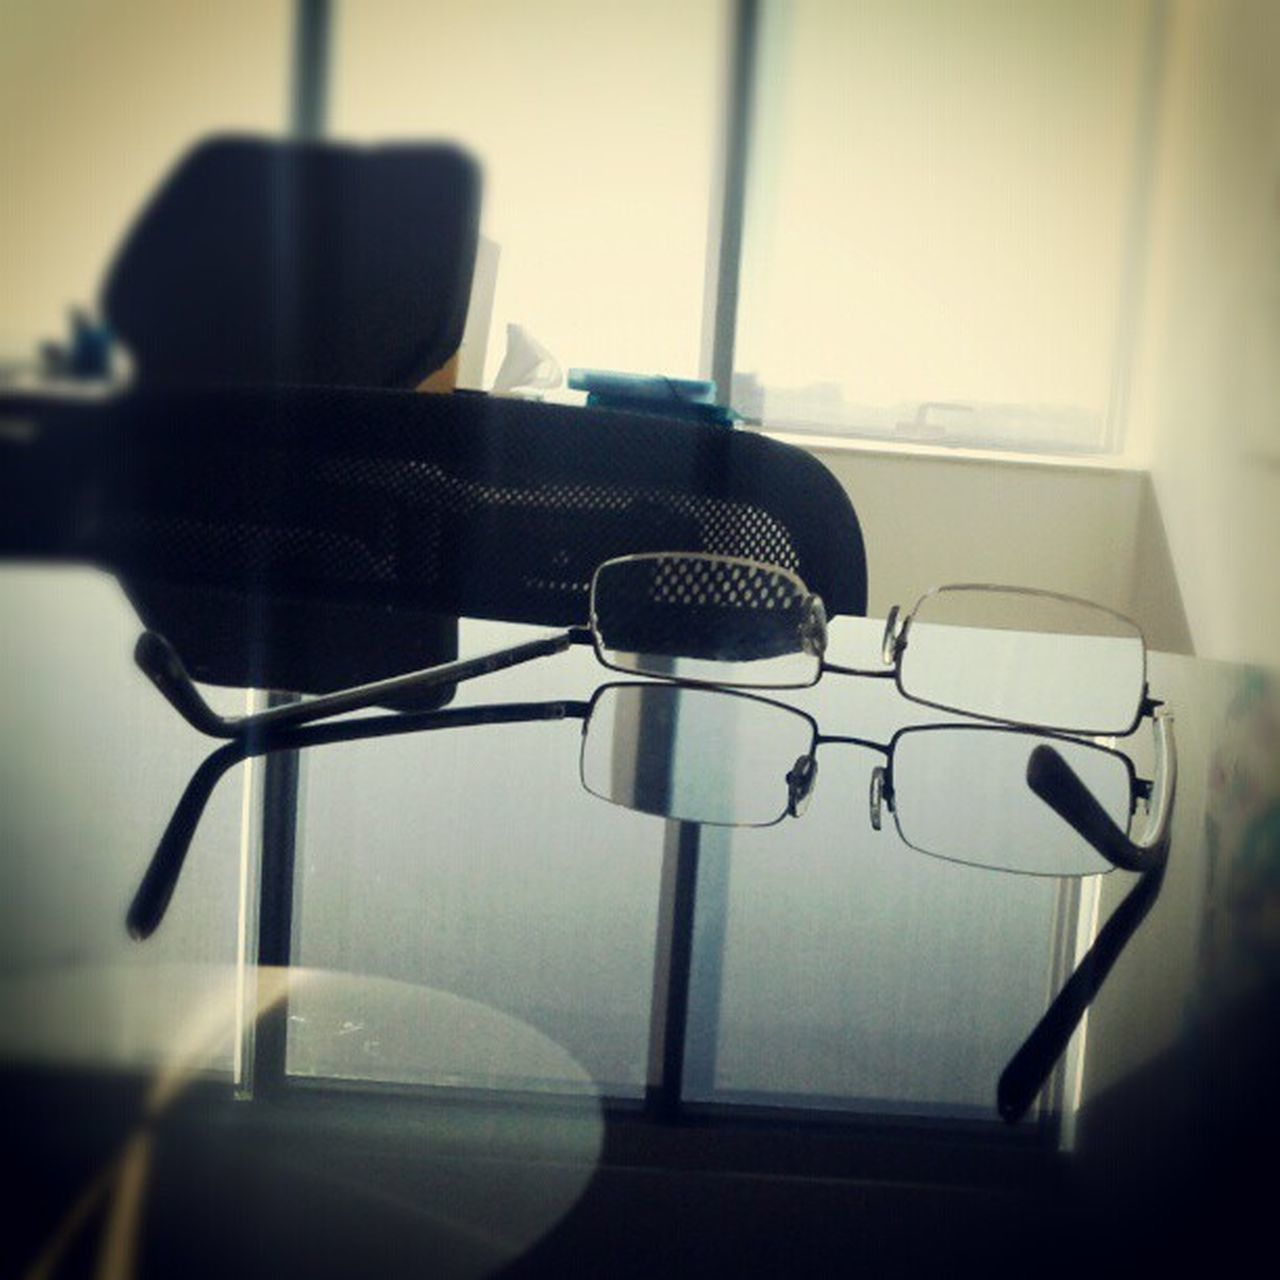 indoors, chair, no people, close-up, day